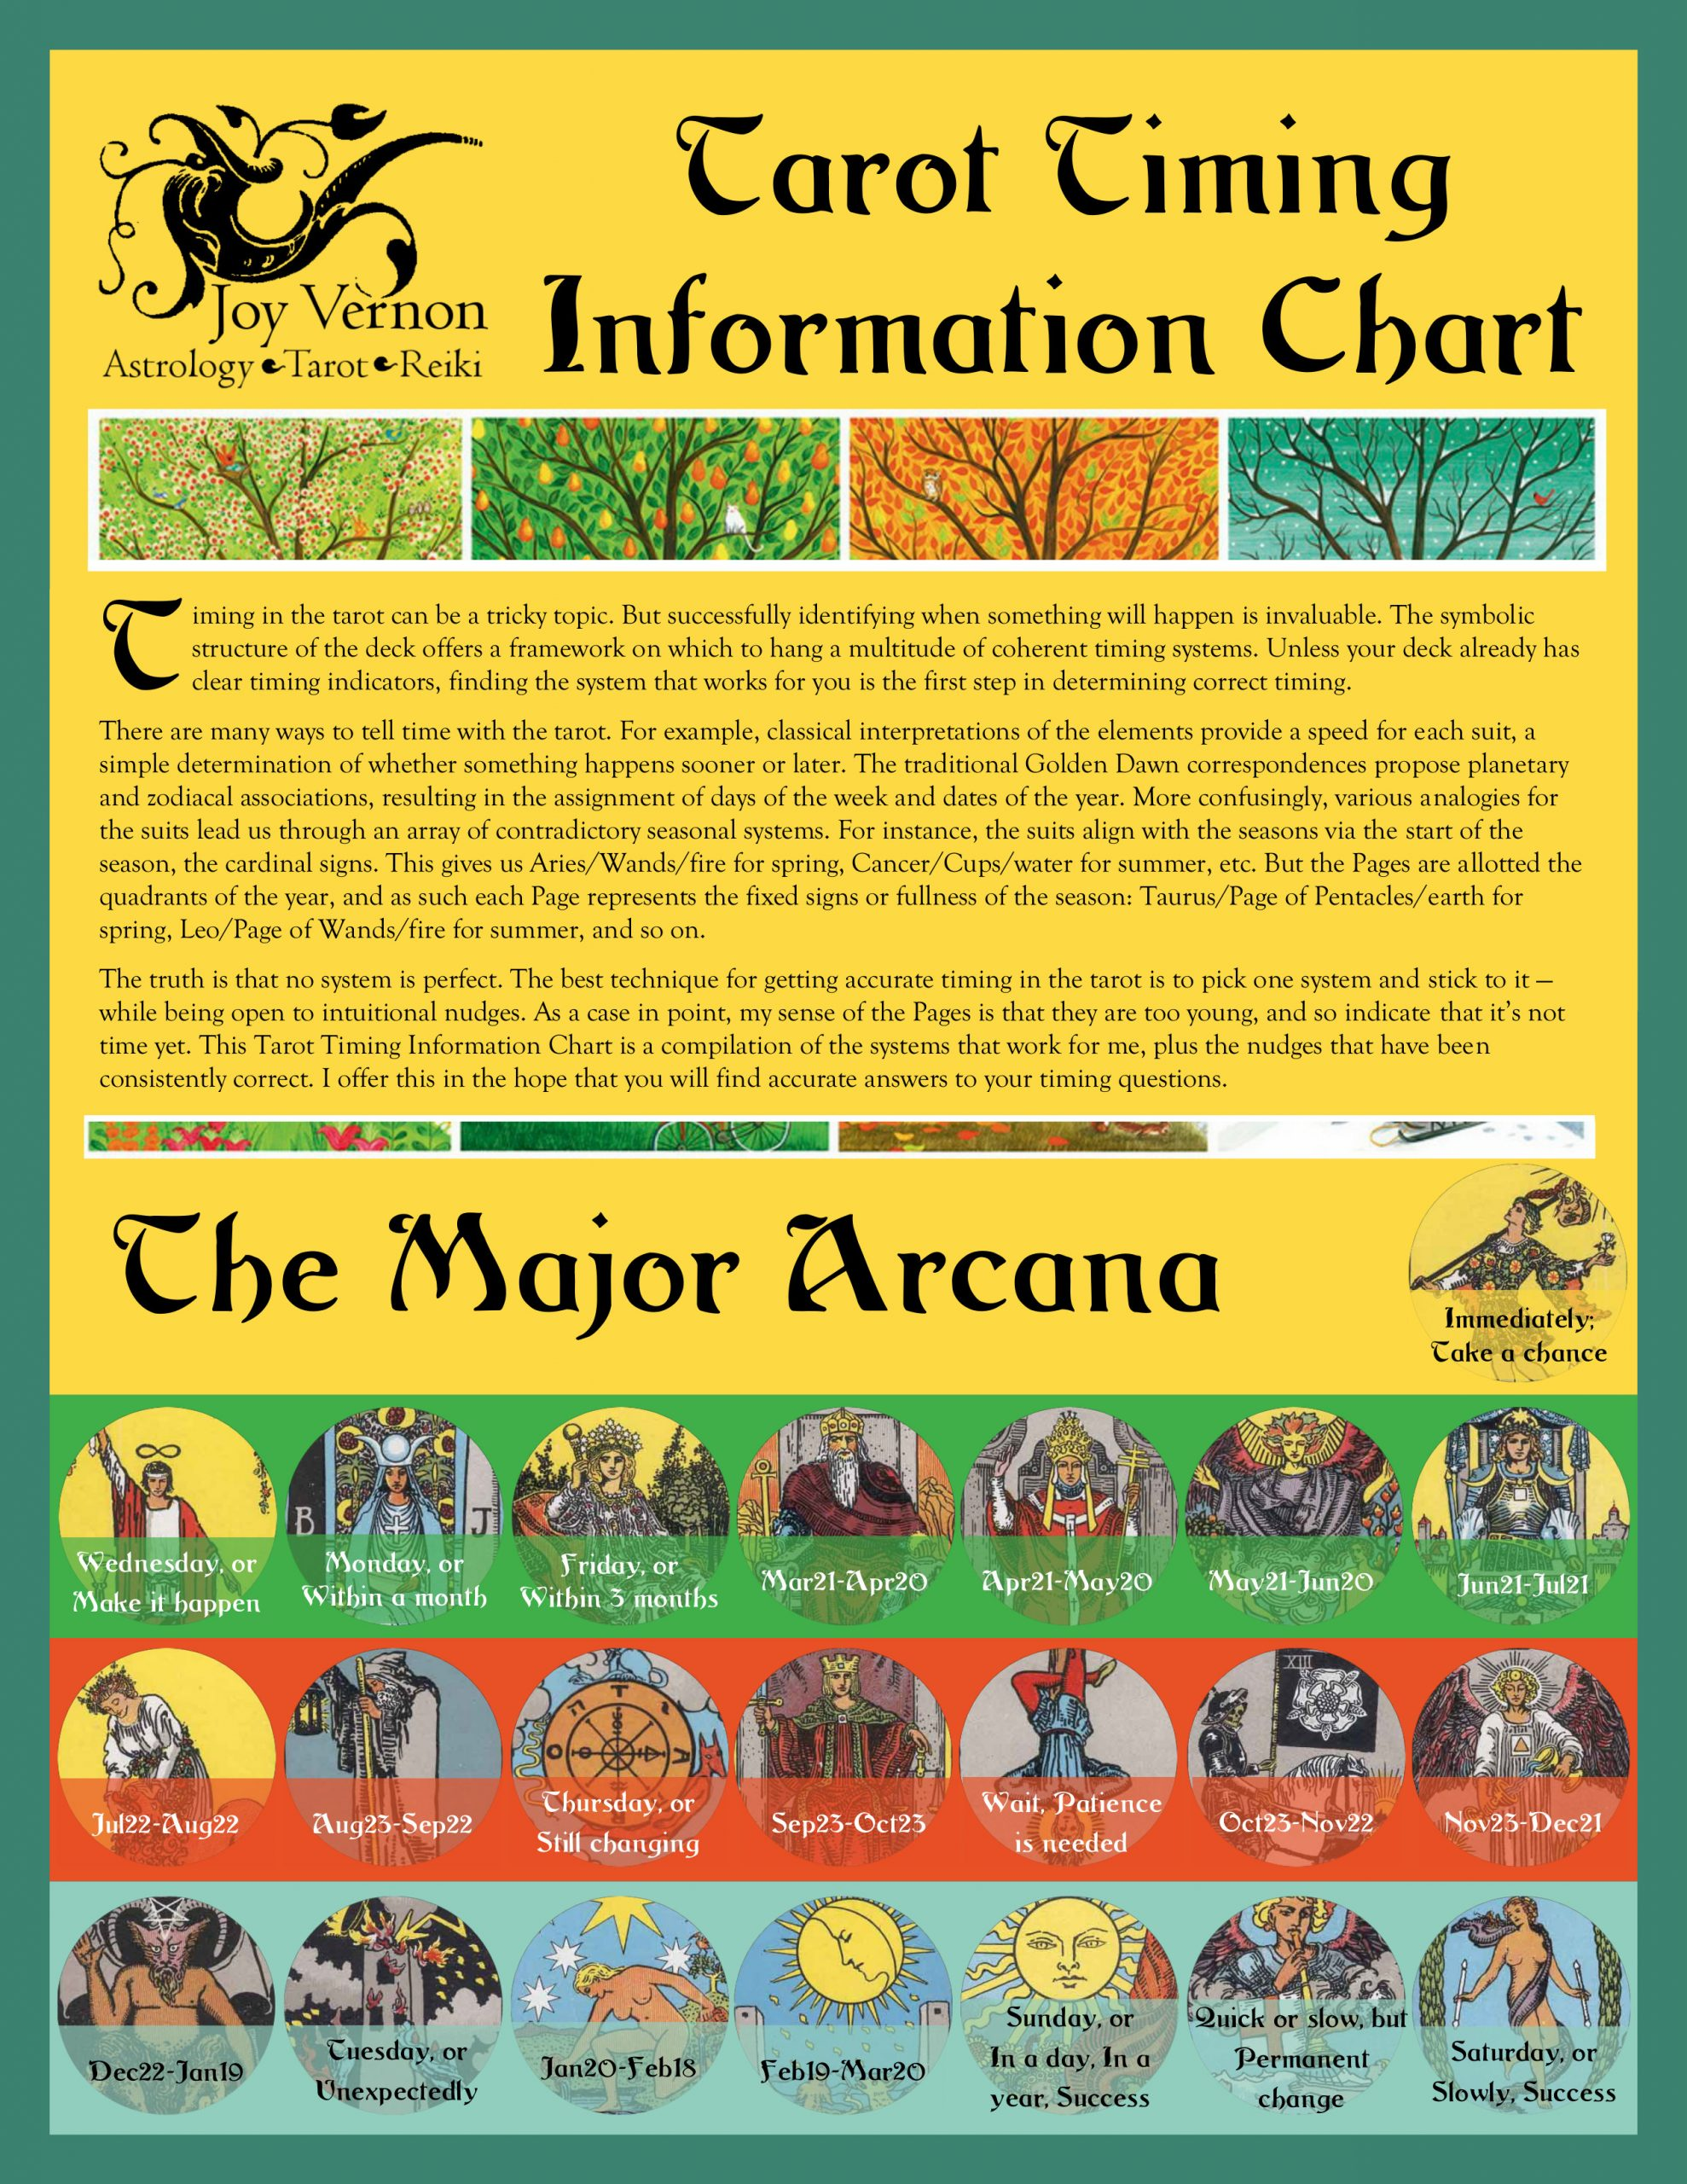 The Tarot Timing Information Chart gives you the timing for every card in the tarot deck.